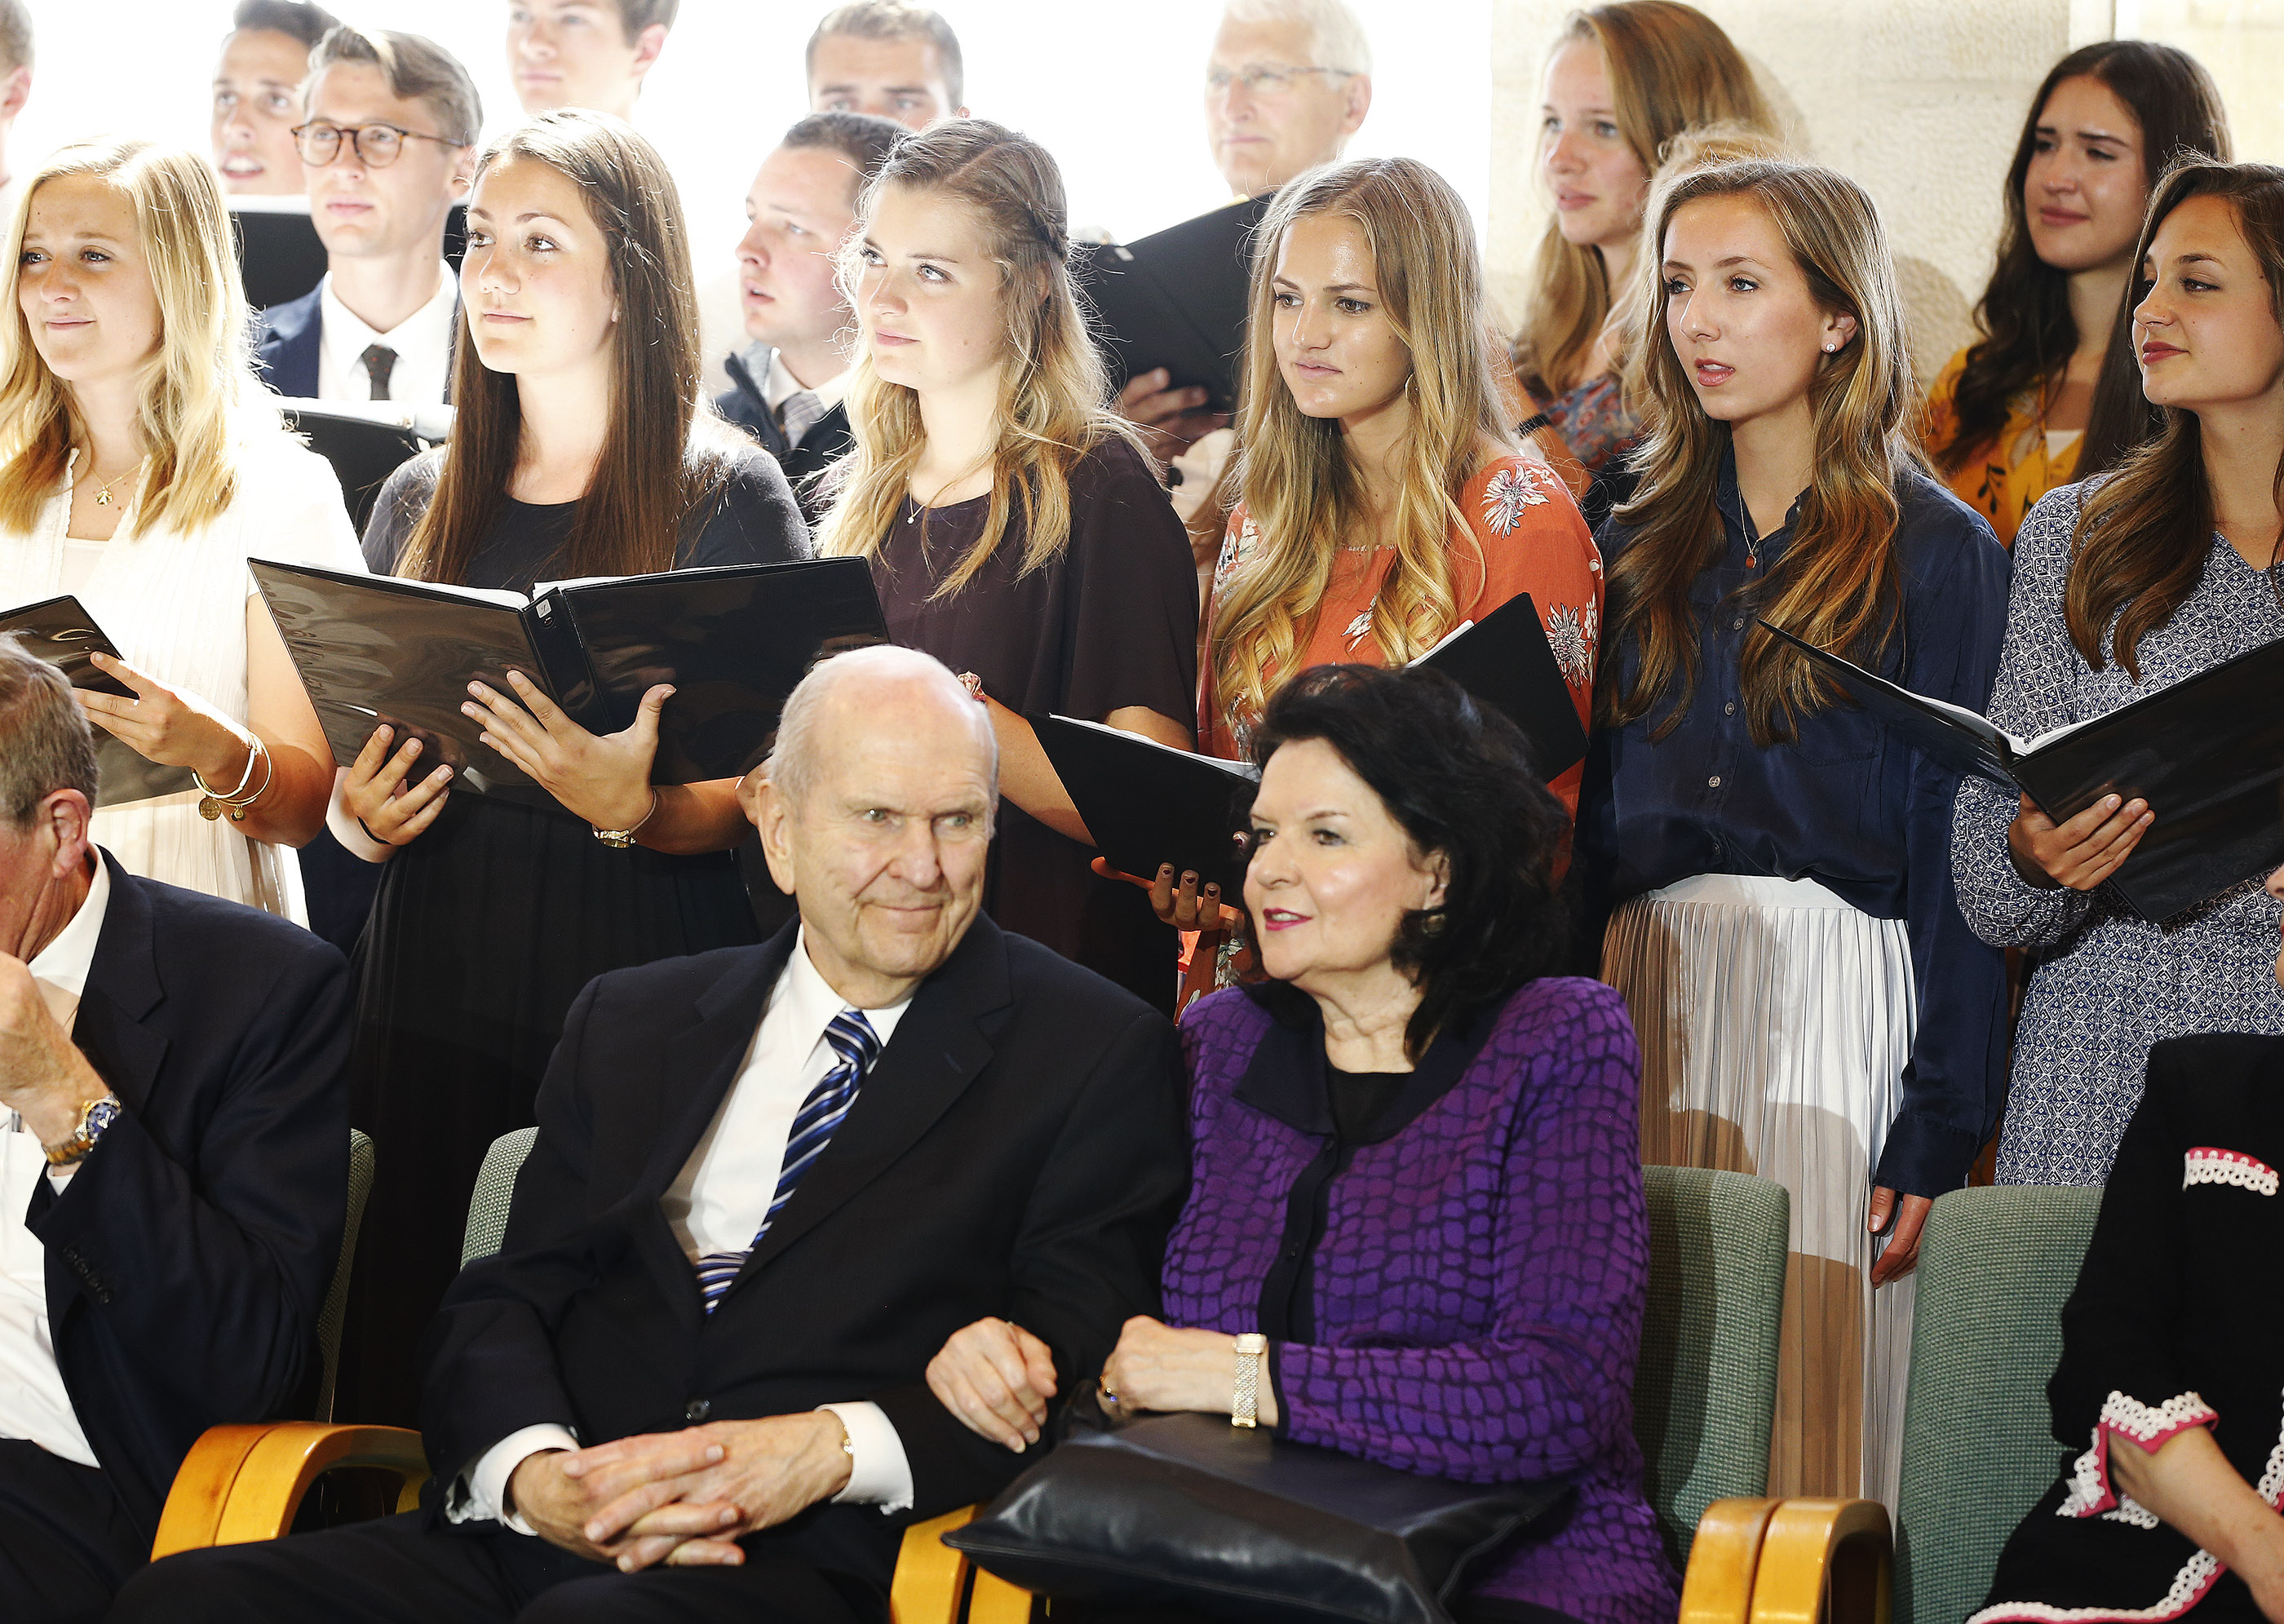 President Russell M. Nelson, president of The Church of Jesus Christ of Latter-day Saints, and his wife, Sister Wendy Watson Nelson, listen to the branch choir sing during Jerusalem District Conference at the BYU Jerusalem Center in Jerusalem on Saturday, April 14, 2018.